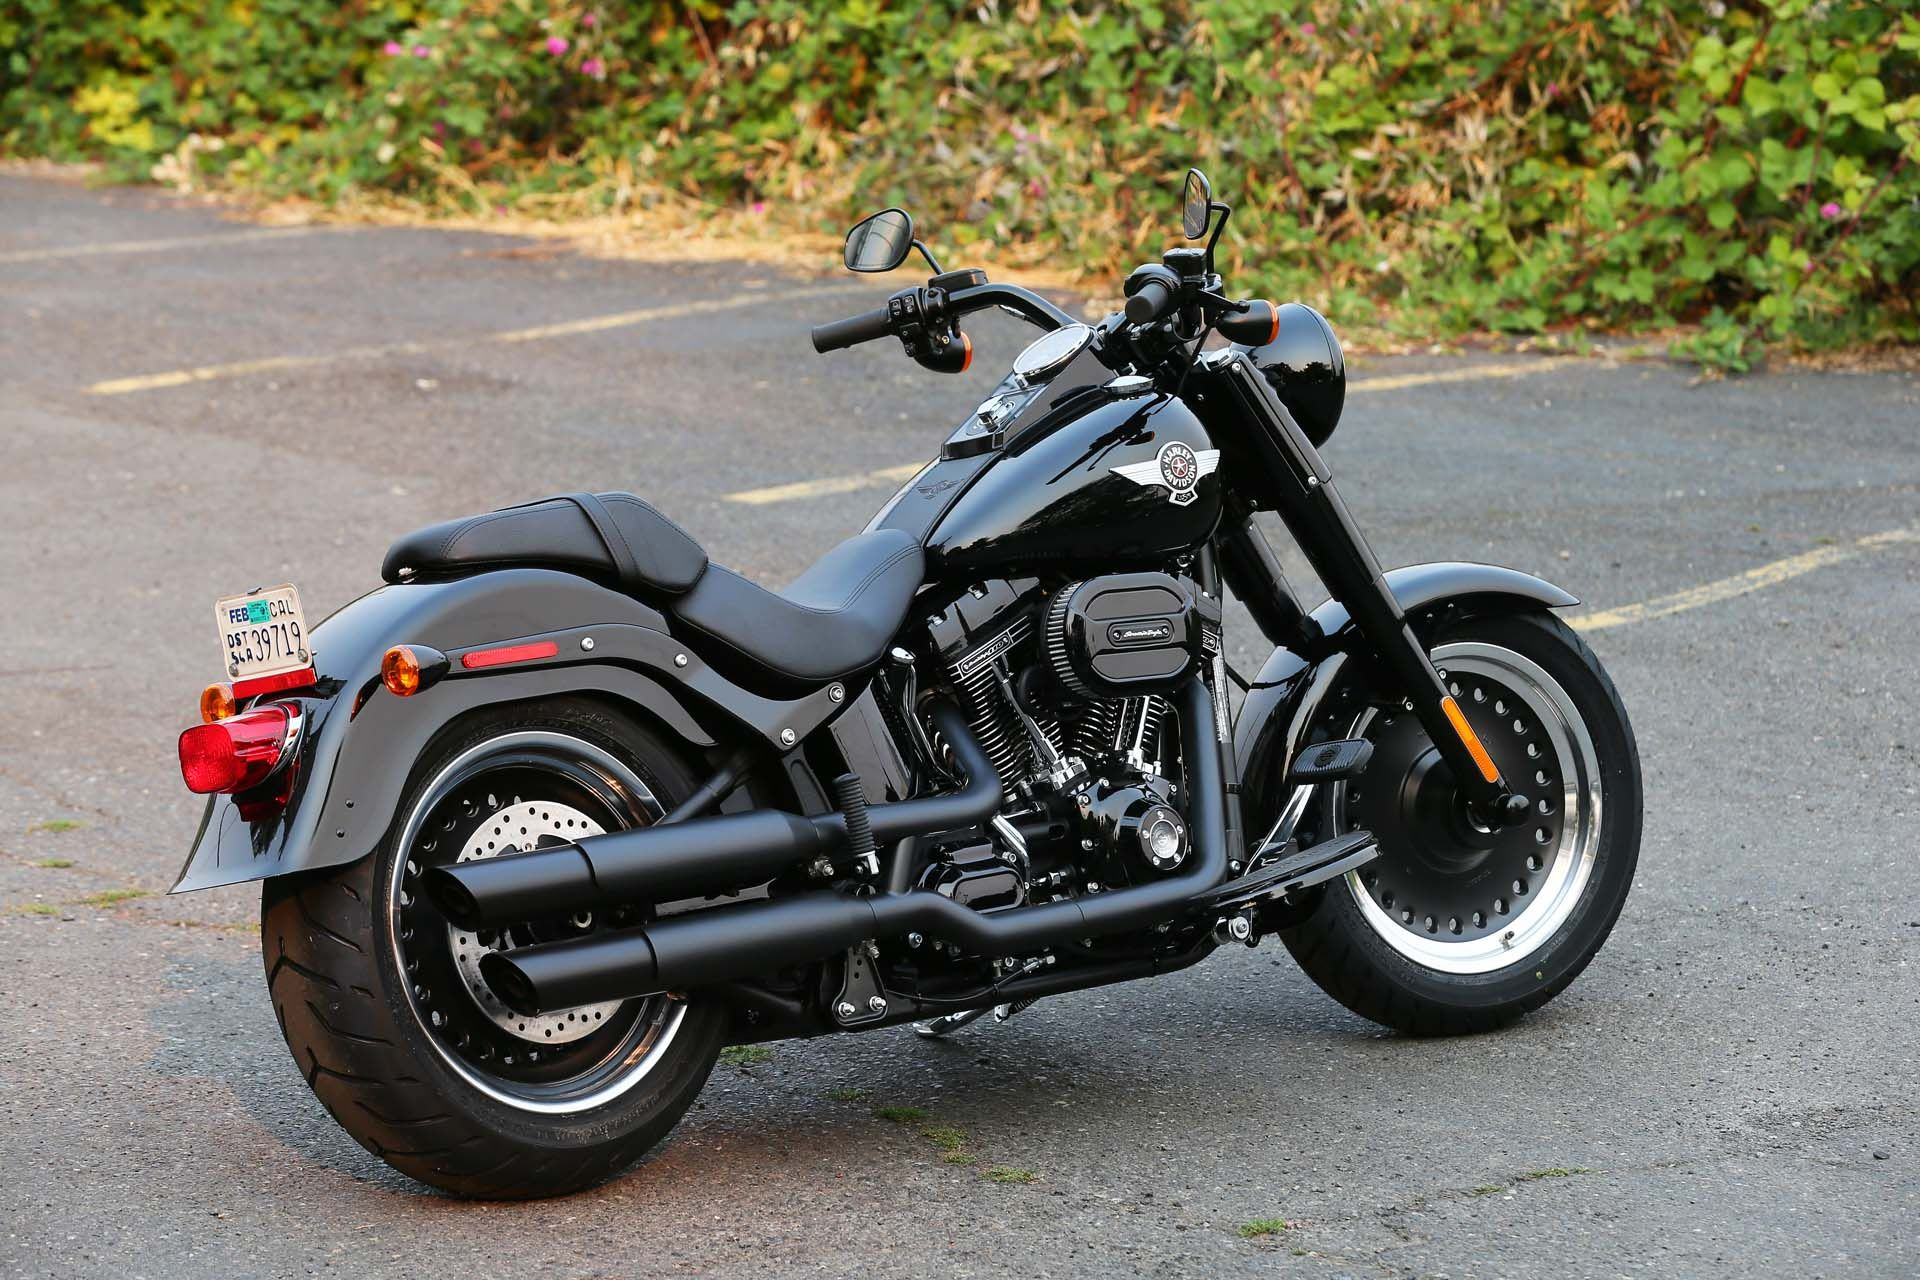 ideas about Harley Fatboy on Pinterest   Harley davidson           ideas about Harley Fatboy on Pinterest   Harley davidson fatboy  Harley davidson motorcycles and Chopper motorcycle